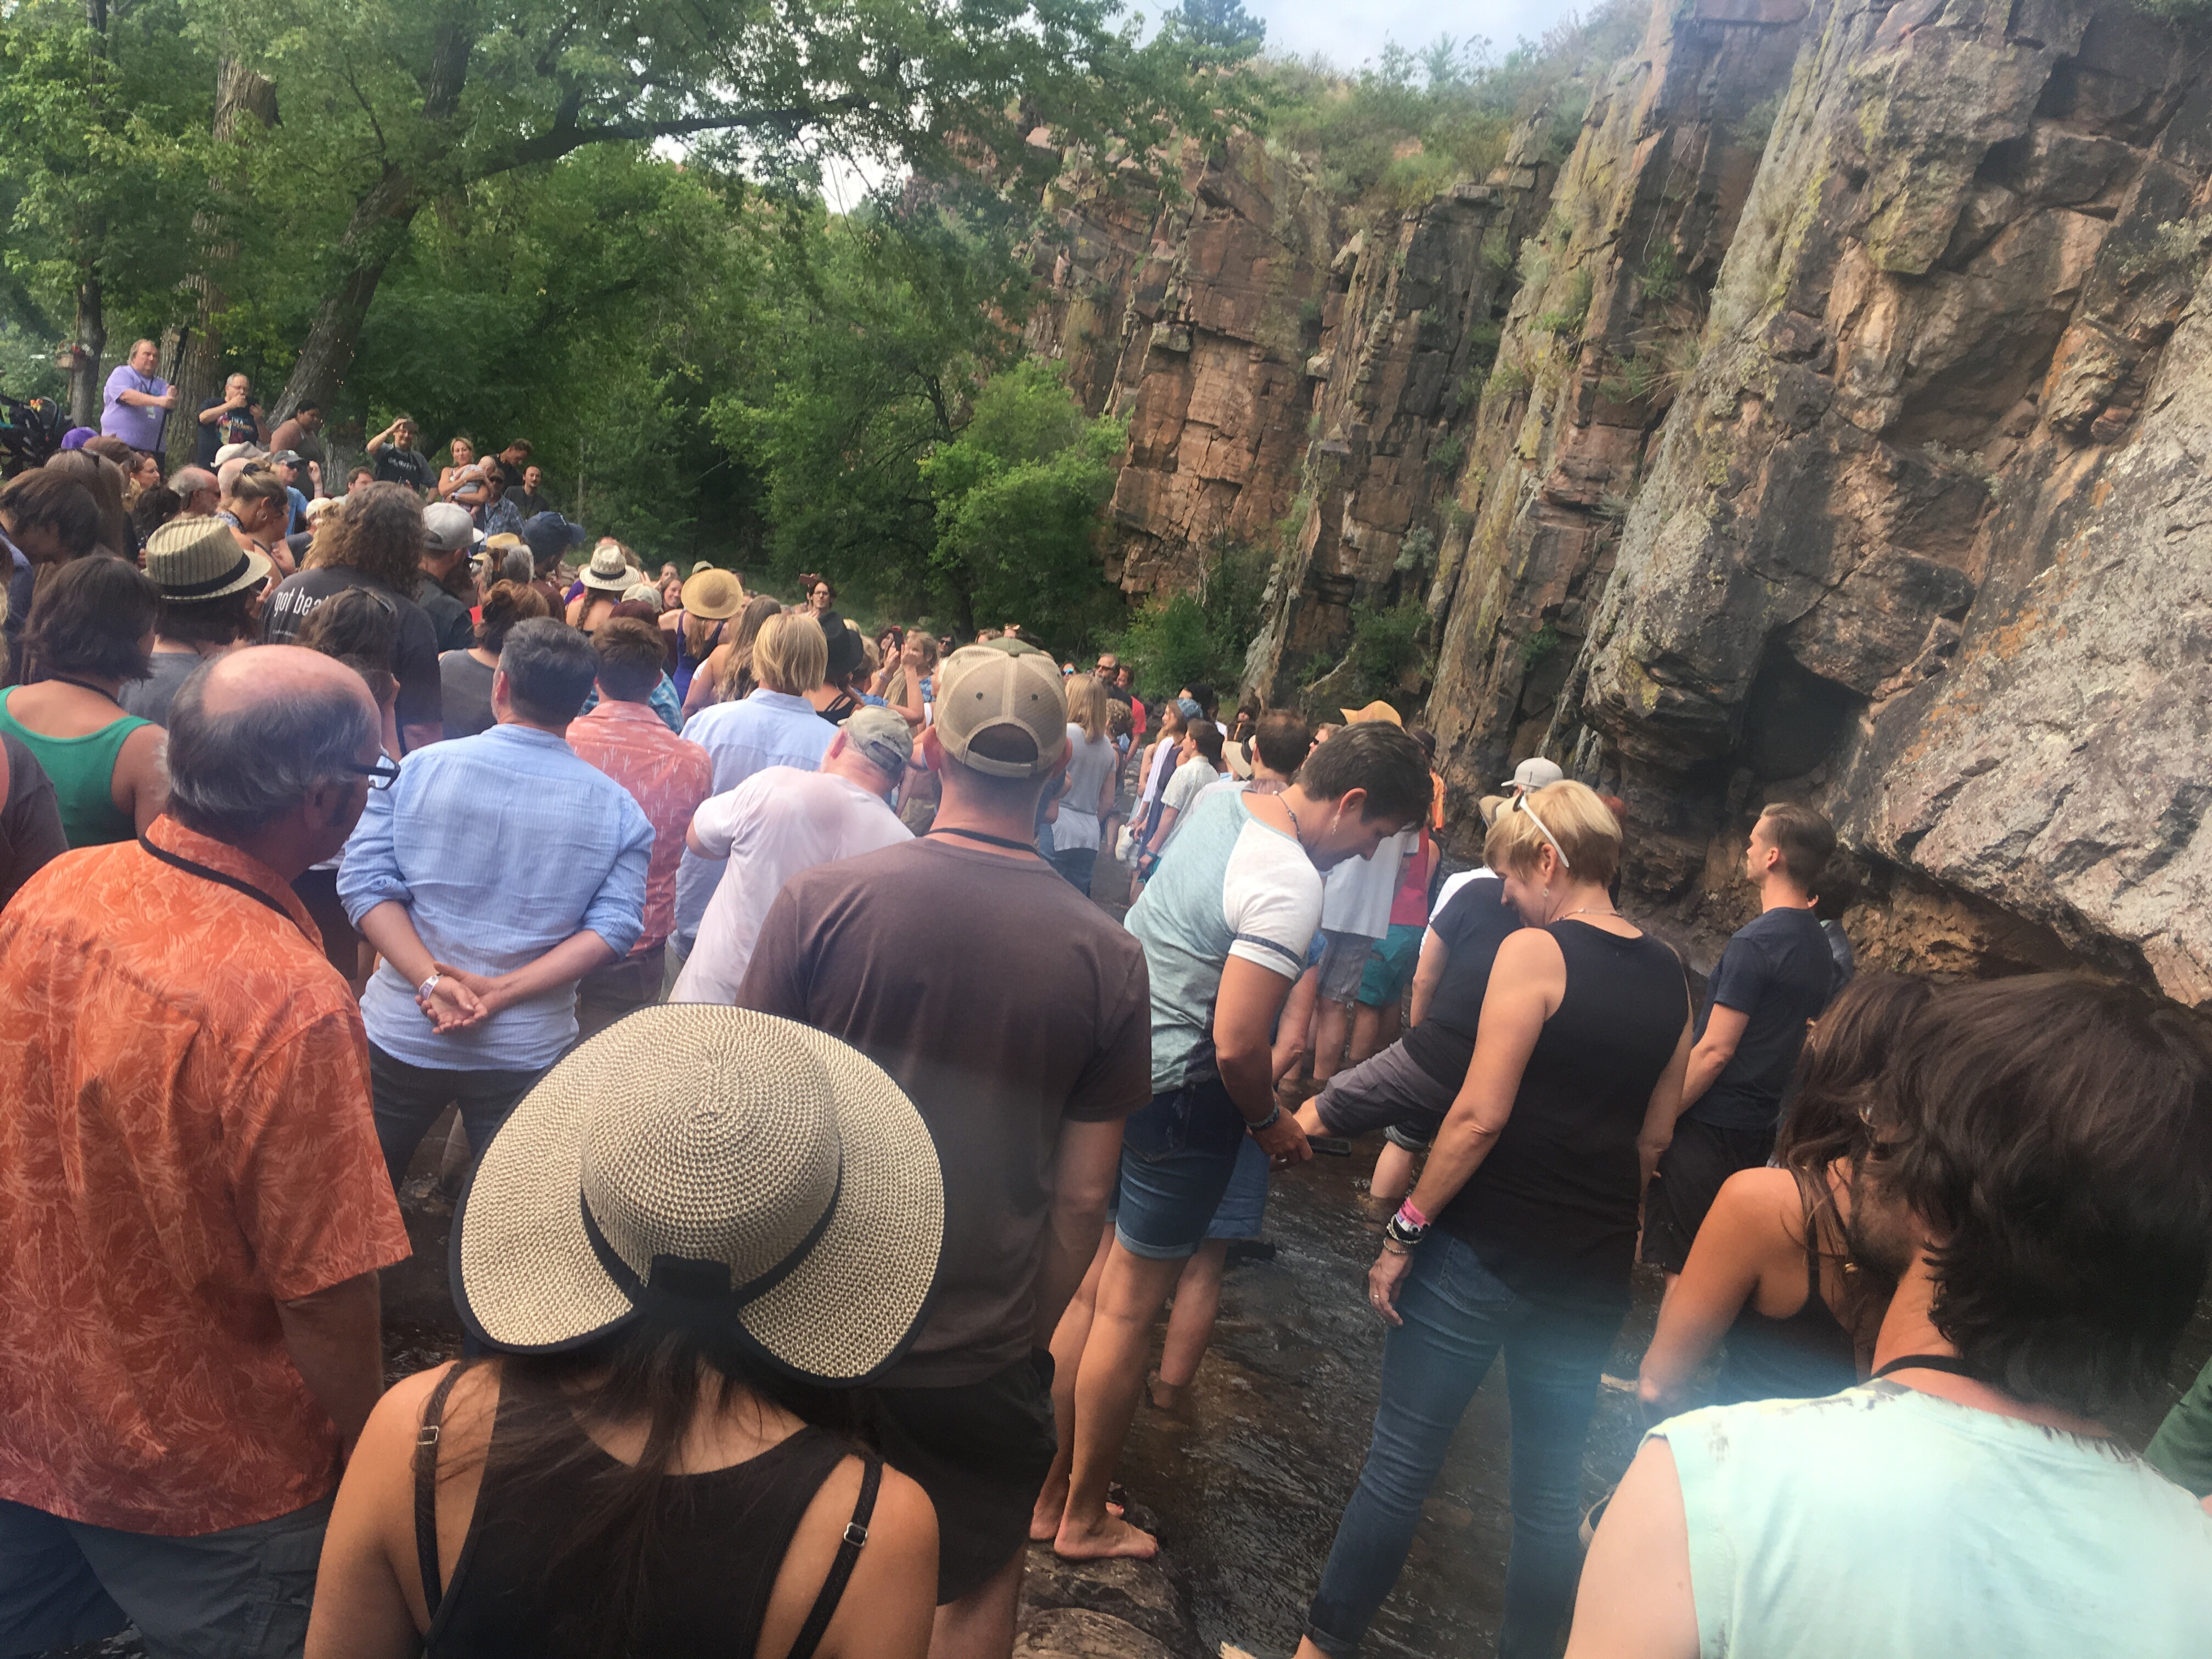 Group sing in the St. Vrain